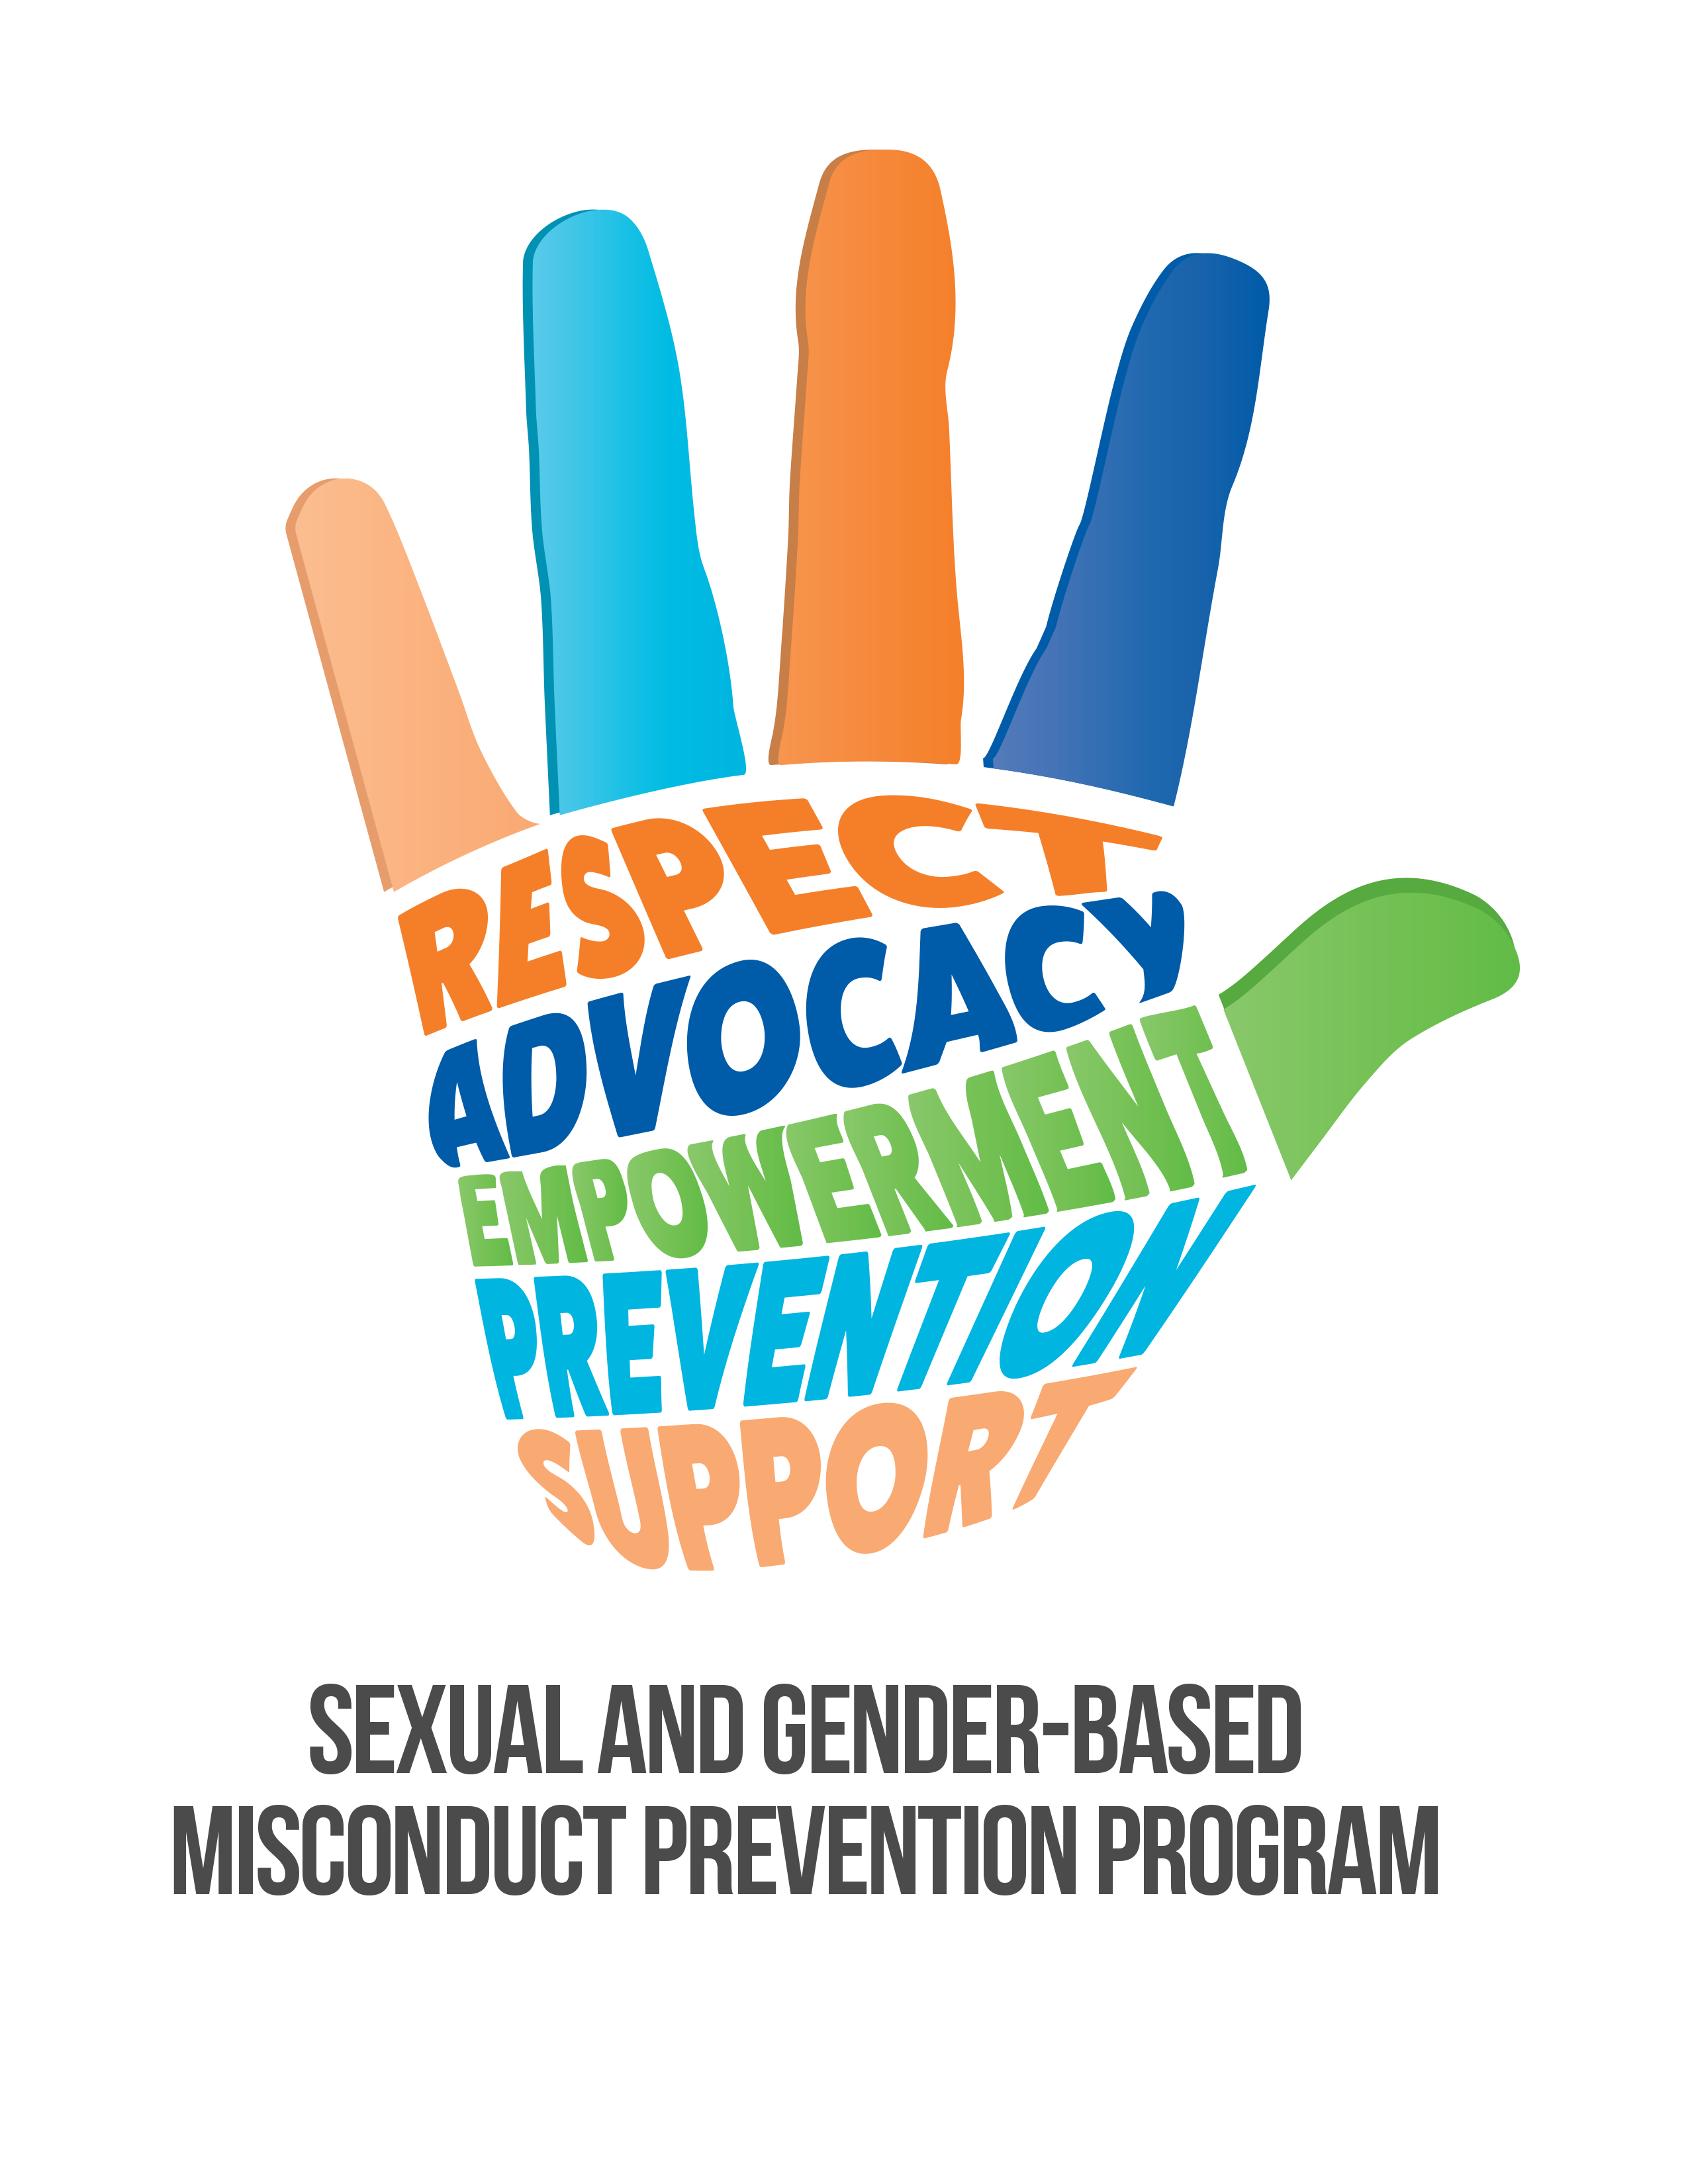 Misconduct prevention program